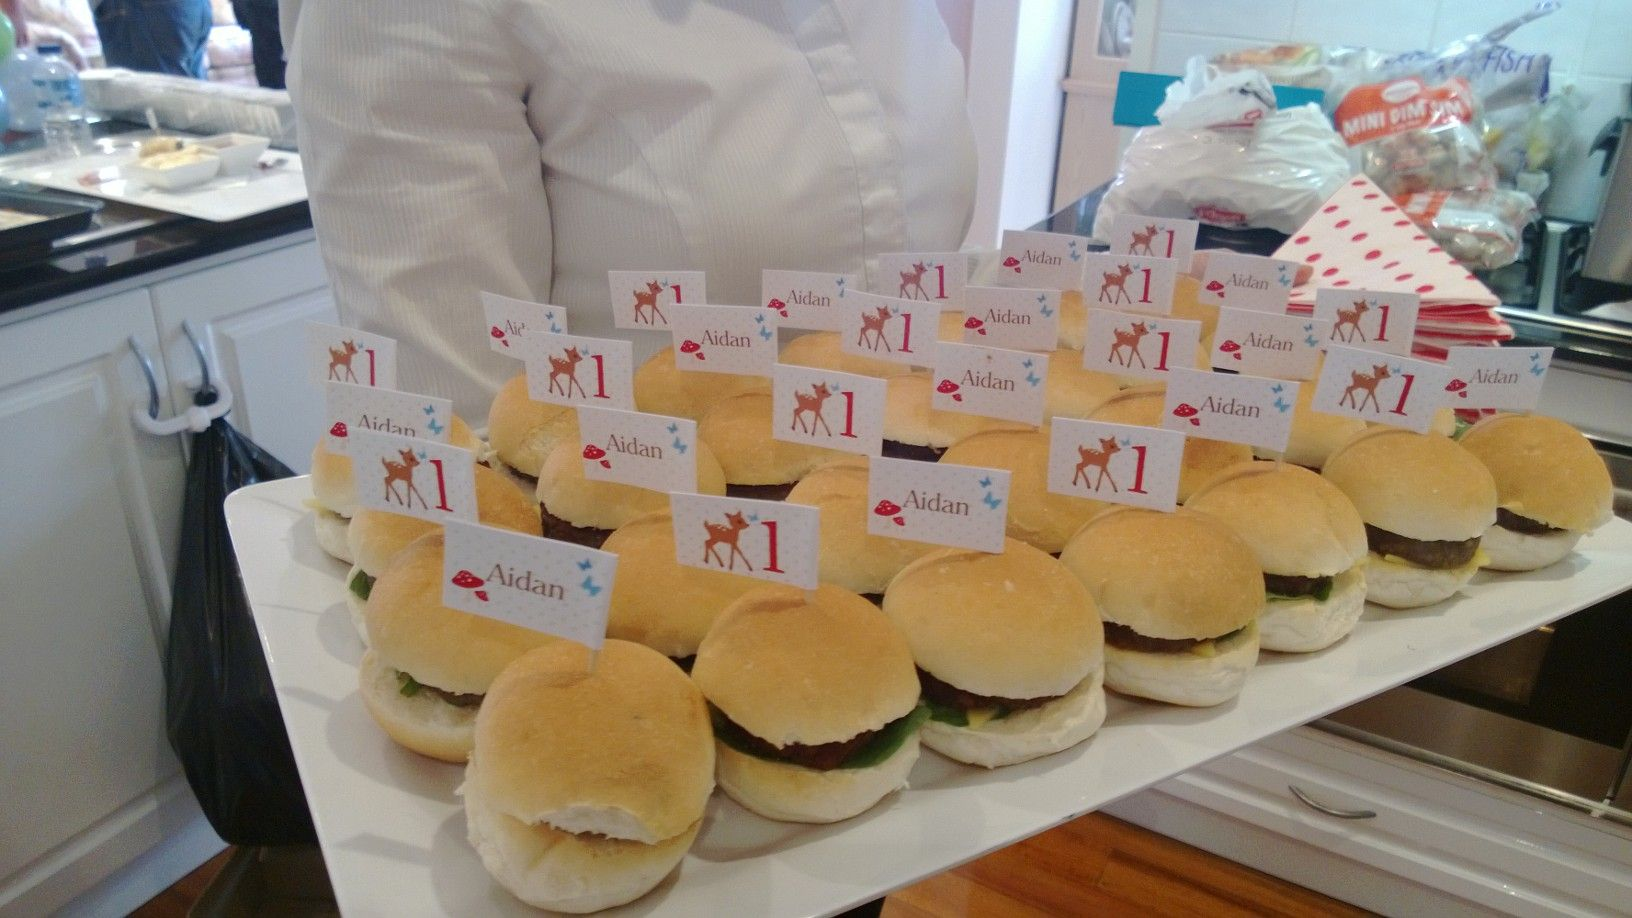 Fresh made little burgers. This set were served up at a 1st birthday party, dressed with hand crafted little toothpick flags